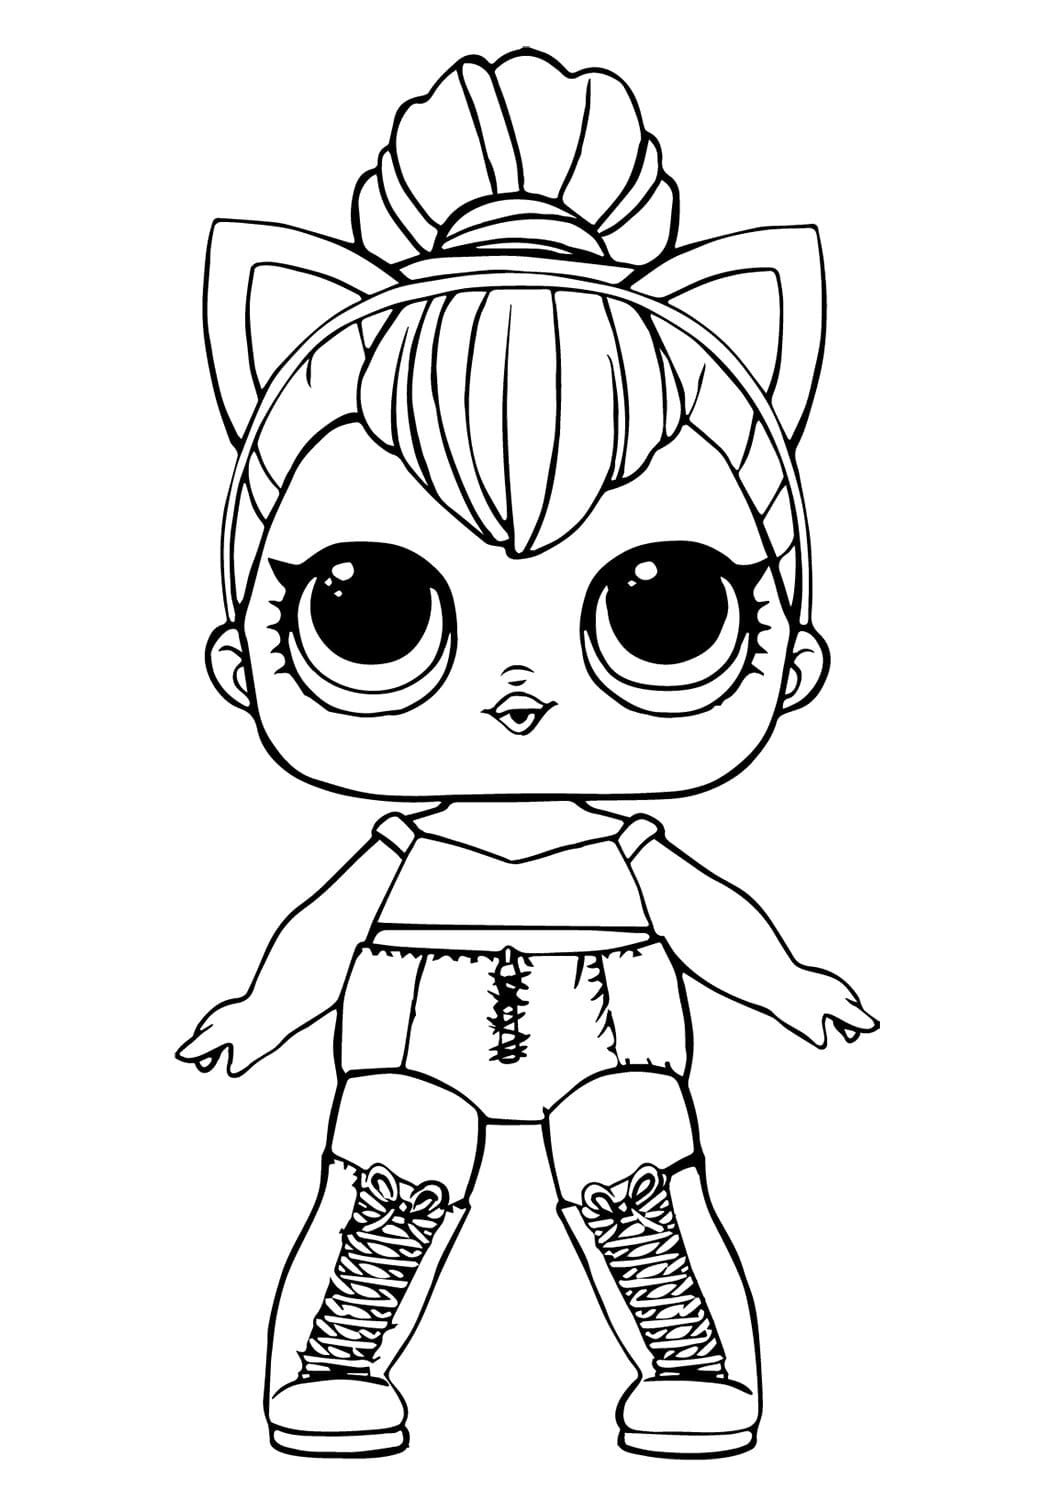 Lol Suprise Doll Kitty Queen Coloring Page